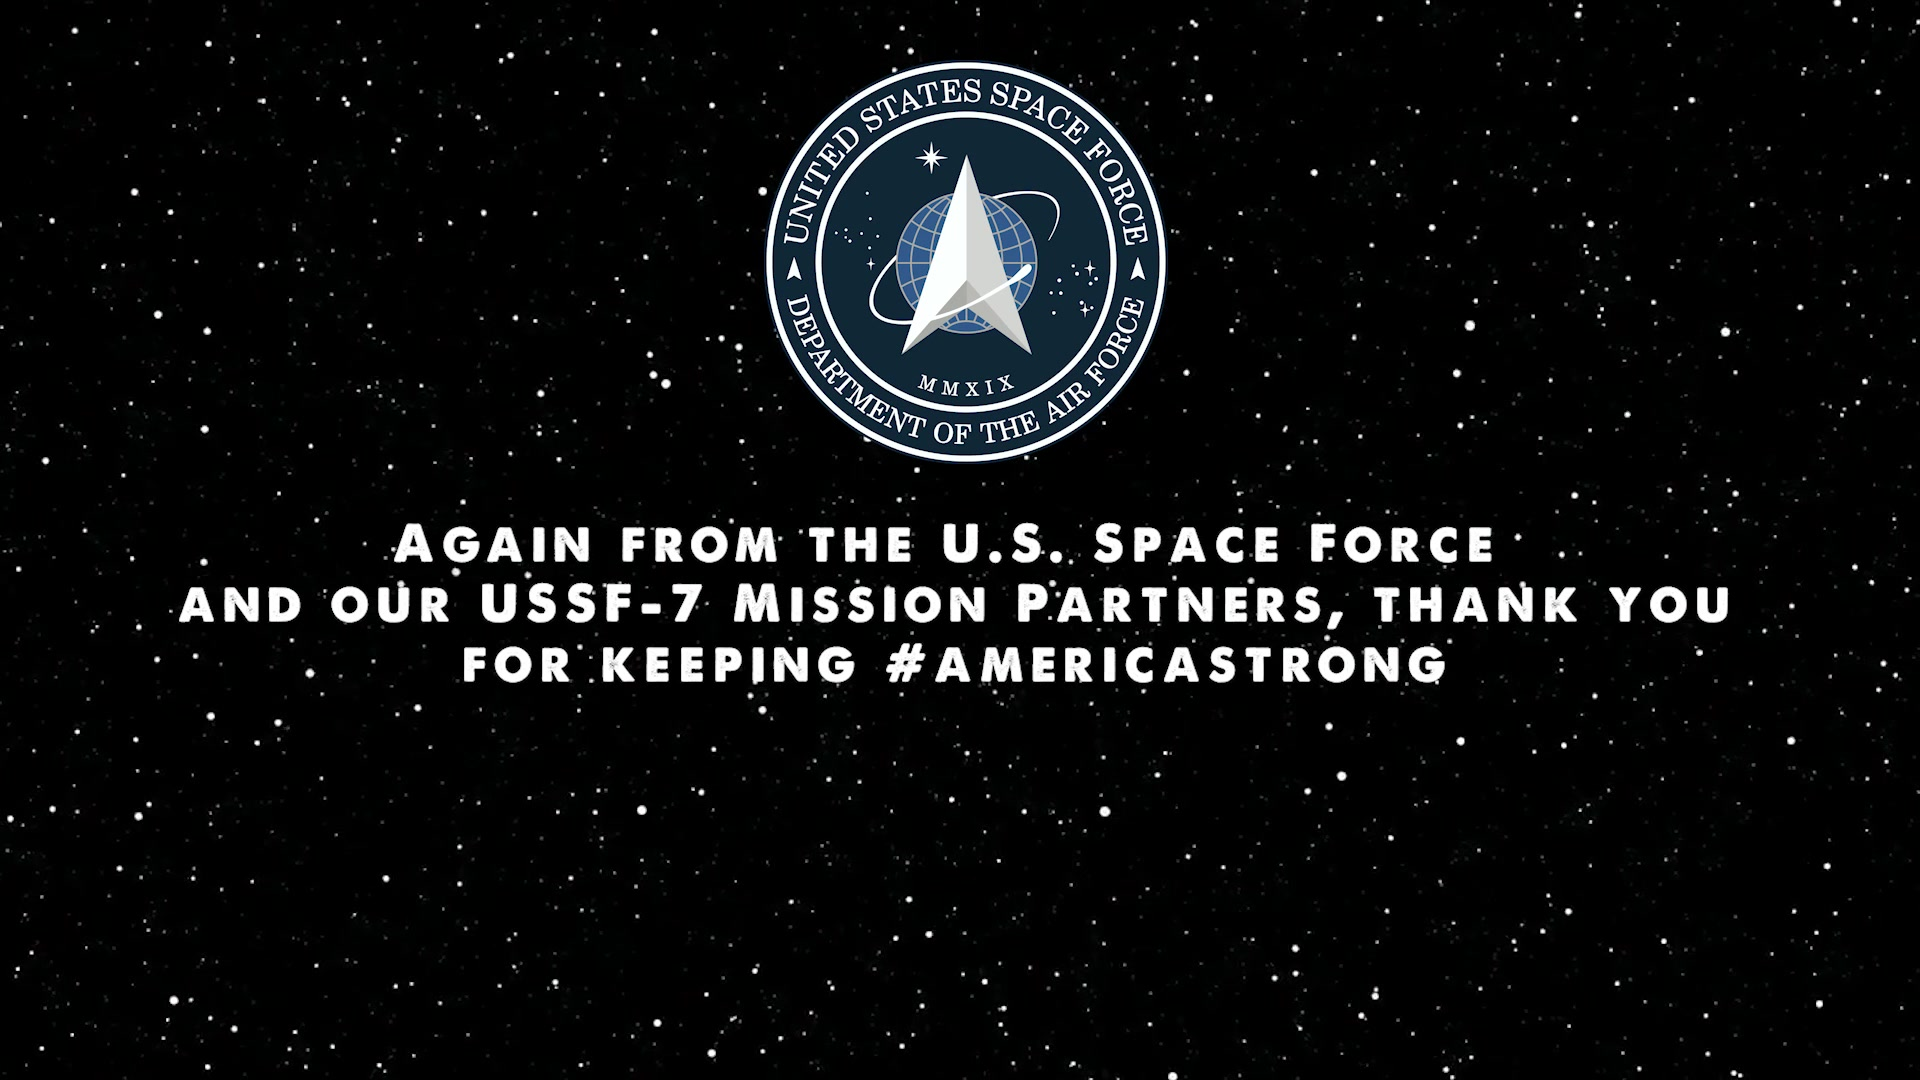 United States Space Force leadership participates in the Department of Defense's America Strong initiative, recognizing healthcare workers, first responders, and other essential personnel on the COVID-19 frontlines.